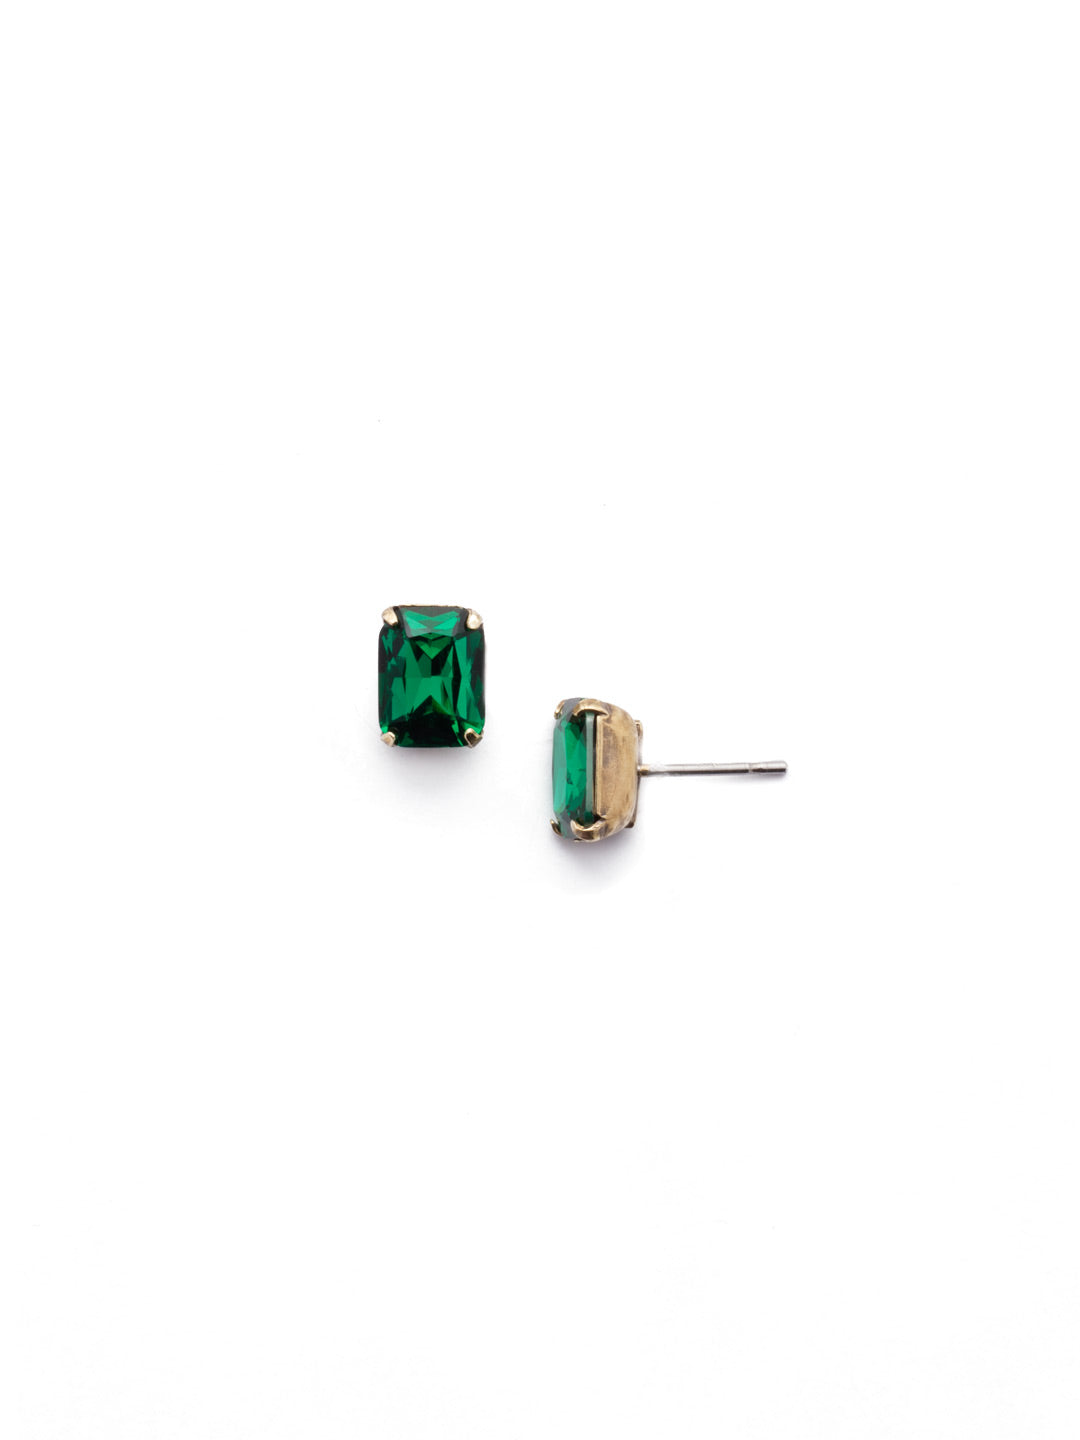 Mini Emerald Cut Stud Earrings - EBY42AGEME